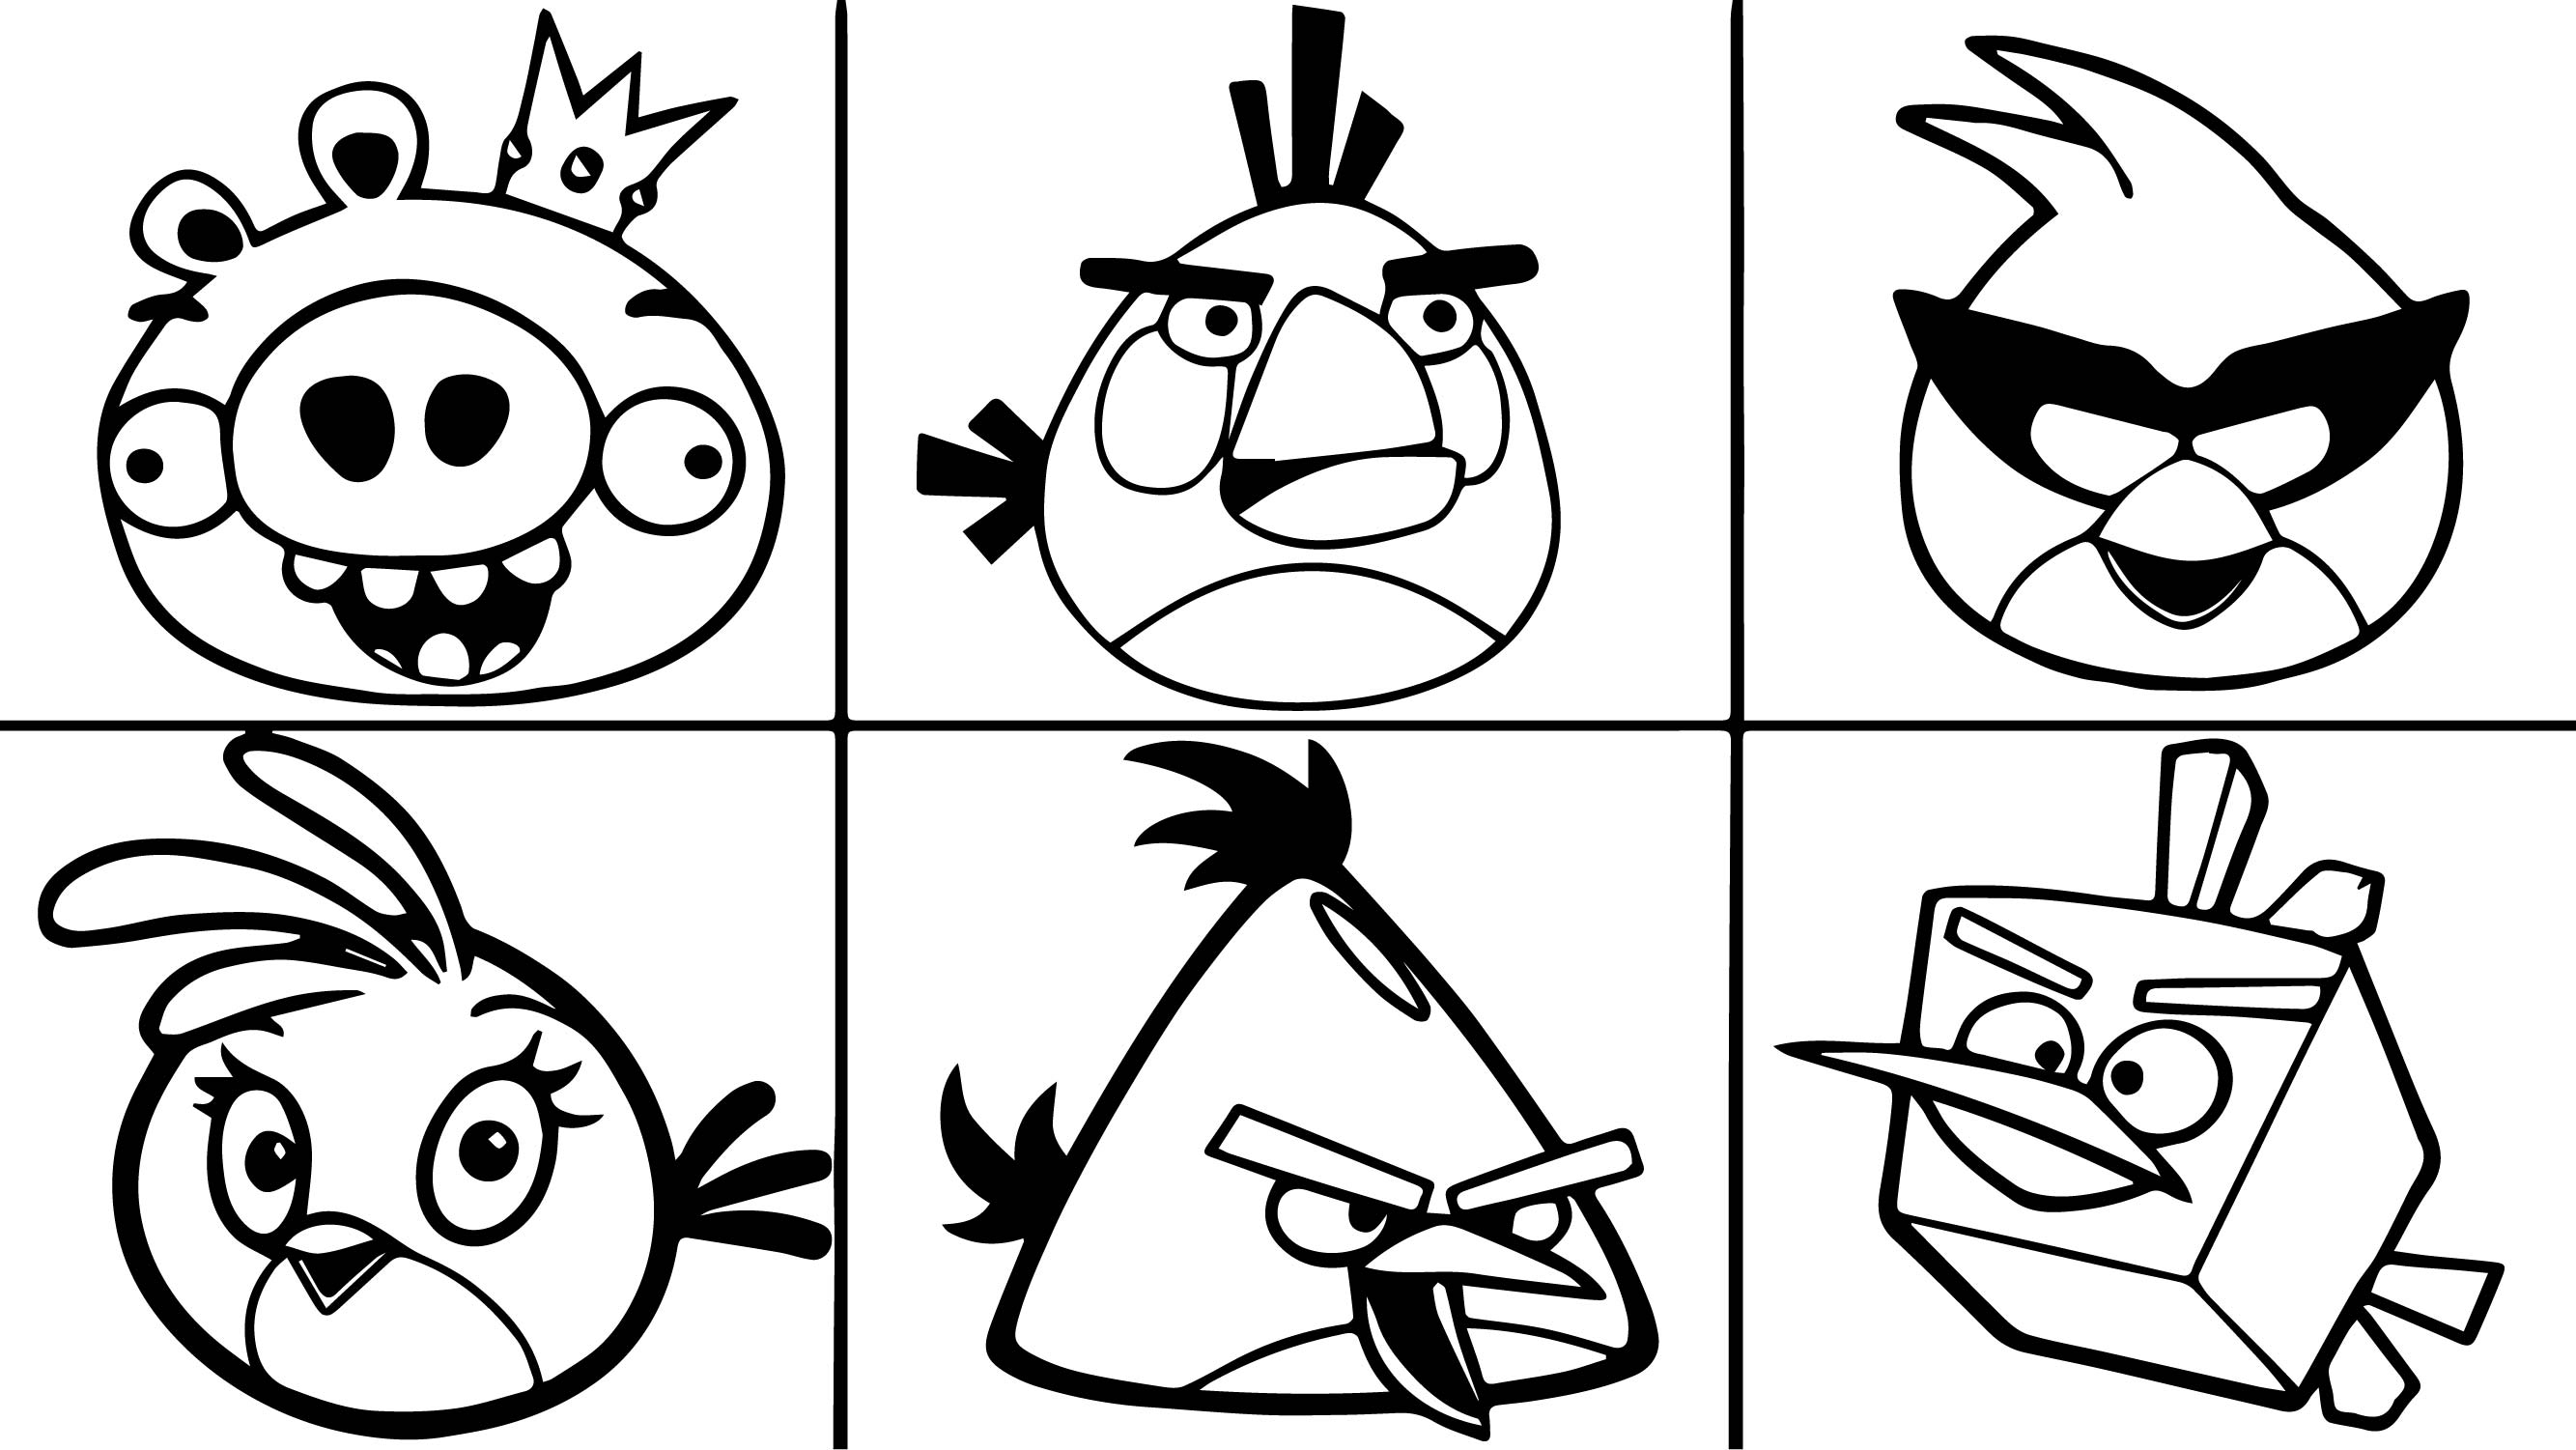 Six Angry Birds Coloring Page